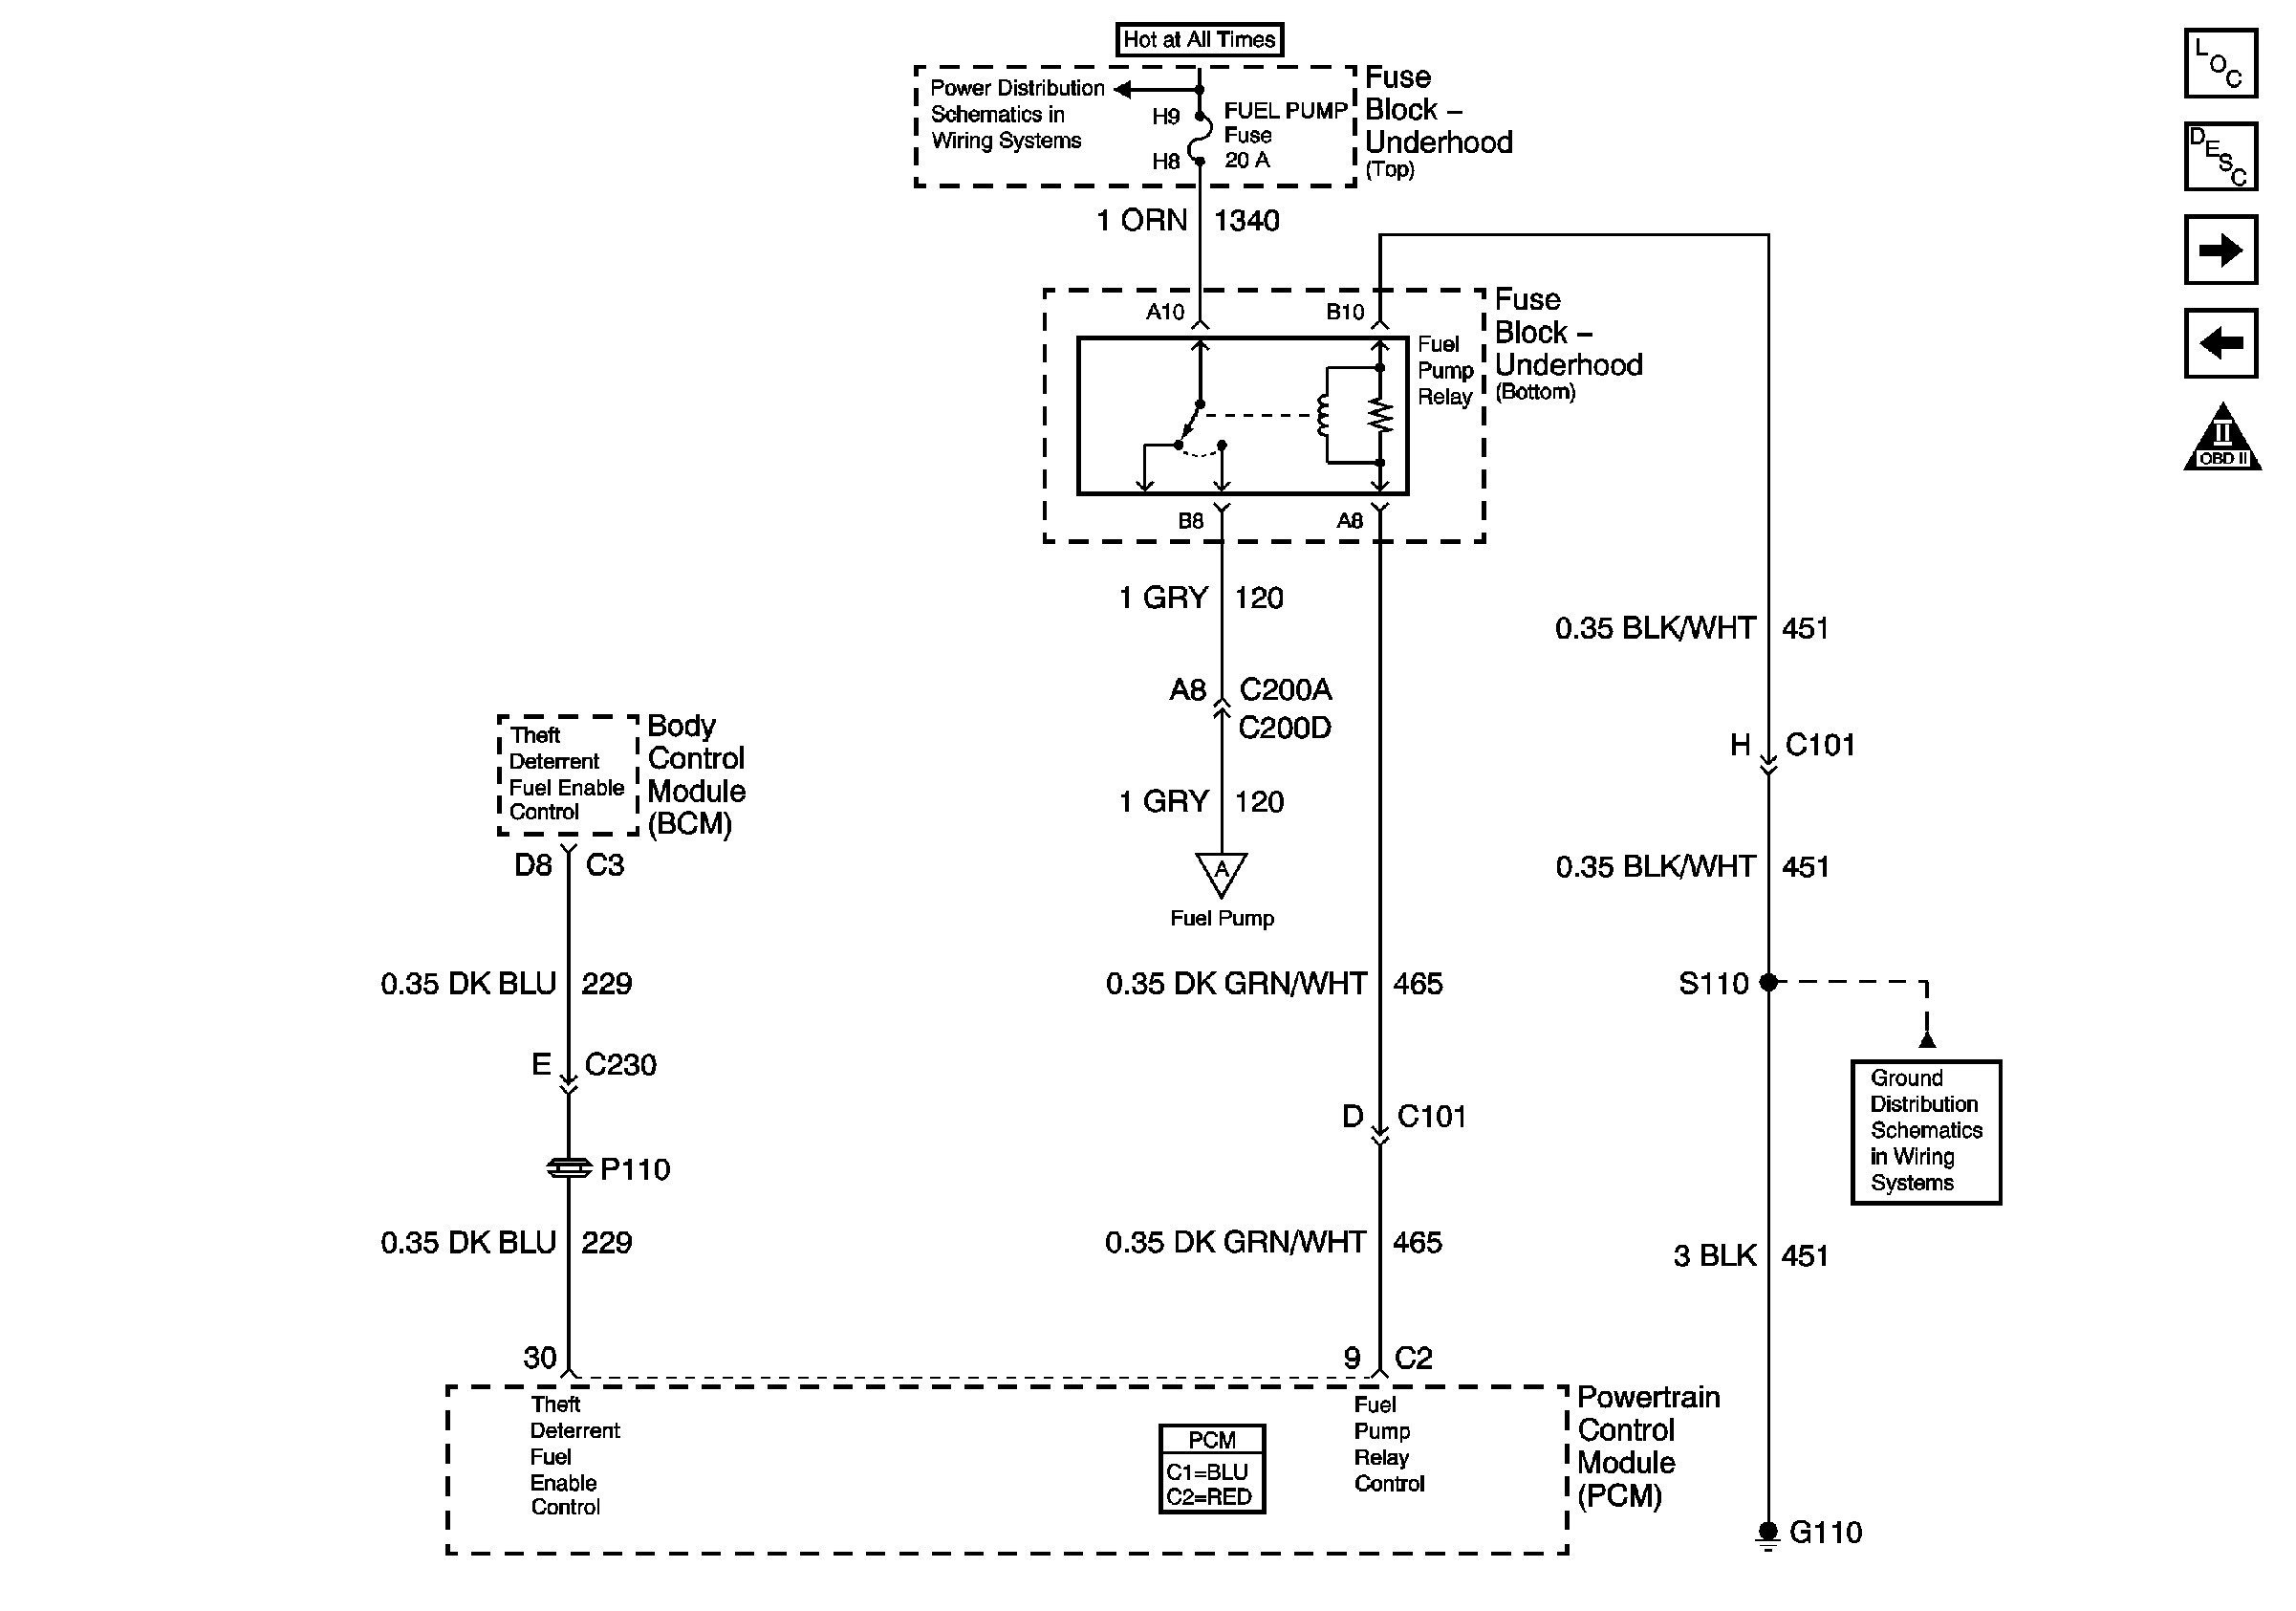 Vs Commodore Wiring Diagram on internet of things diagrams, gmc fuse box diagrams, series and parallel circuits diagrams, engine diagrams, lighting diagrams, smart car diagrams, honda motorcycle repair diagrams, hvac diagrams, snatch block diagrams, led circuit diagrams, battery diagrams, transformer diagrams, friendship bracelet diagrams, sincgars radio configurations diagrams, switch diagrams, pinout diagrams, motor diagrams, electrical diagrams, troubleshooting diagrams, electronic circuit diagrams,